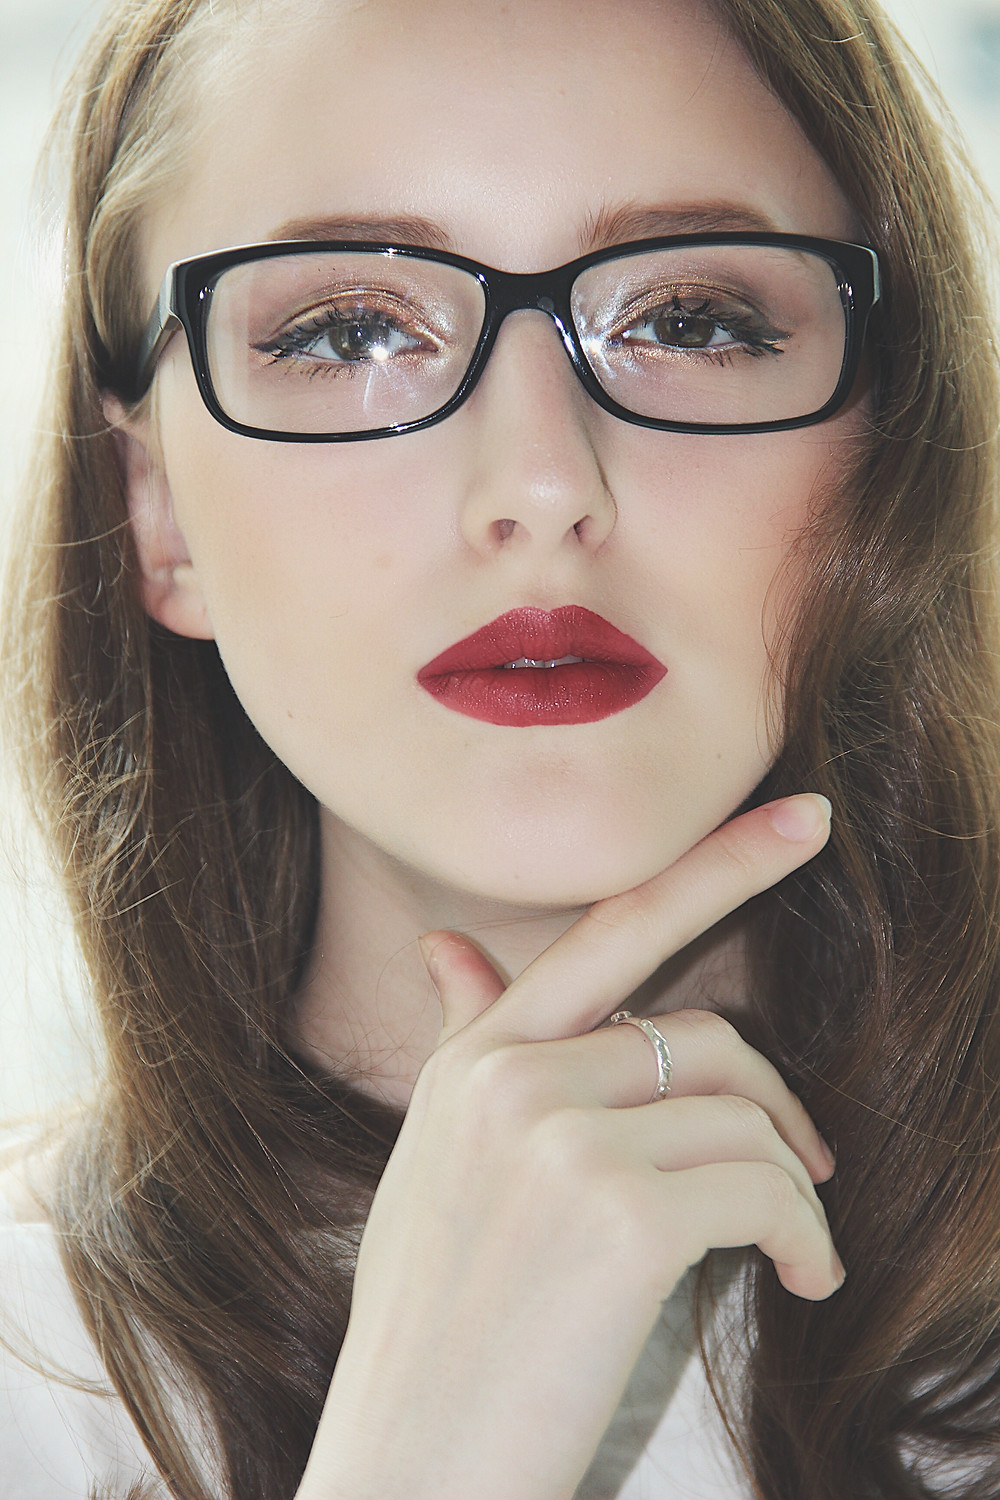 Gucci Glasses and Red Lip in Hong Kong